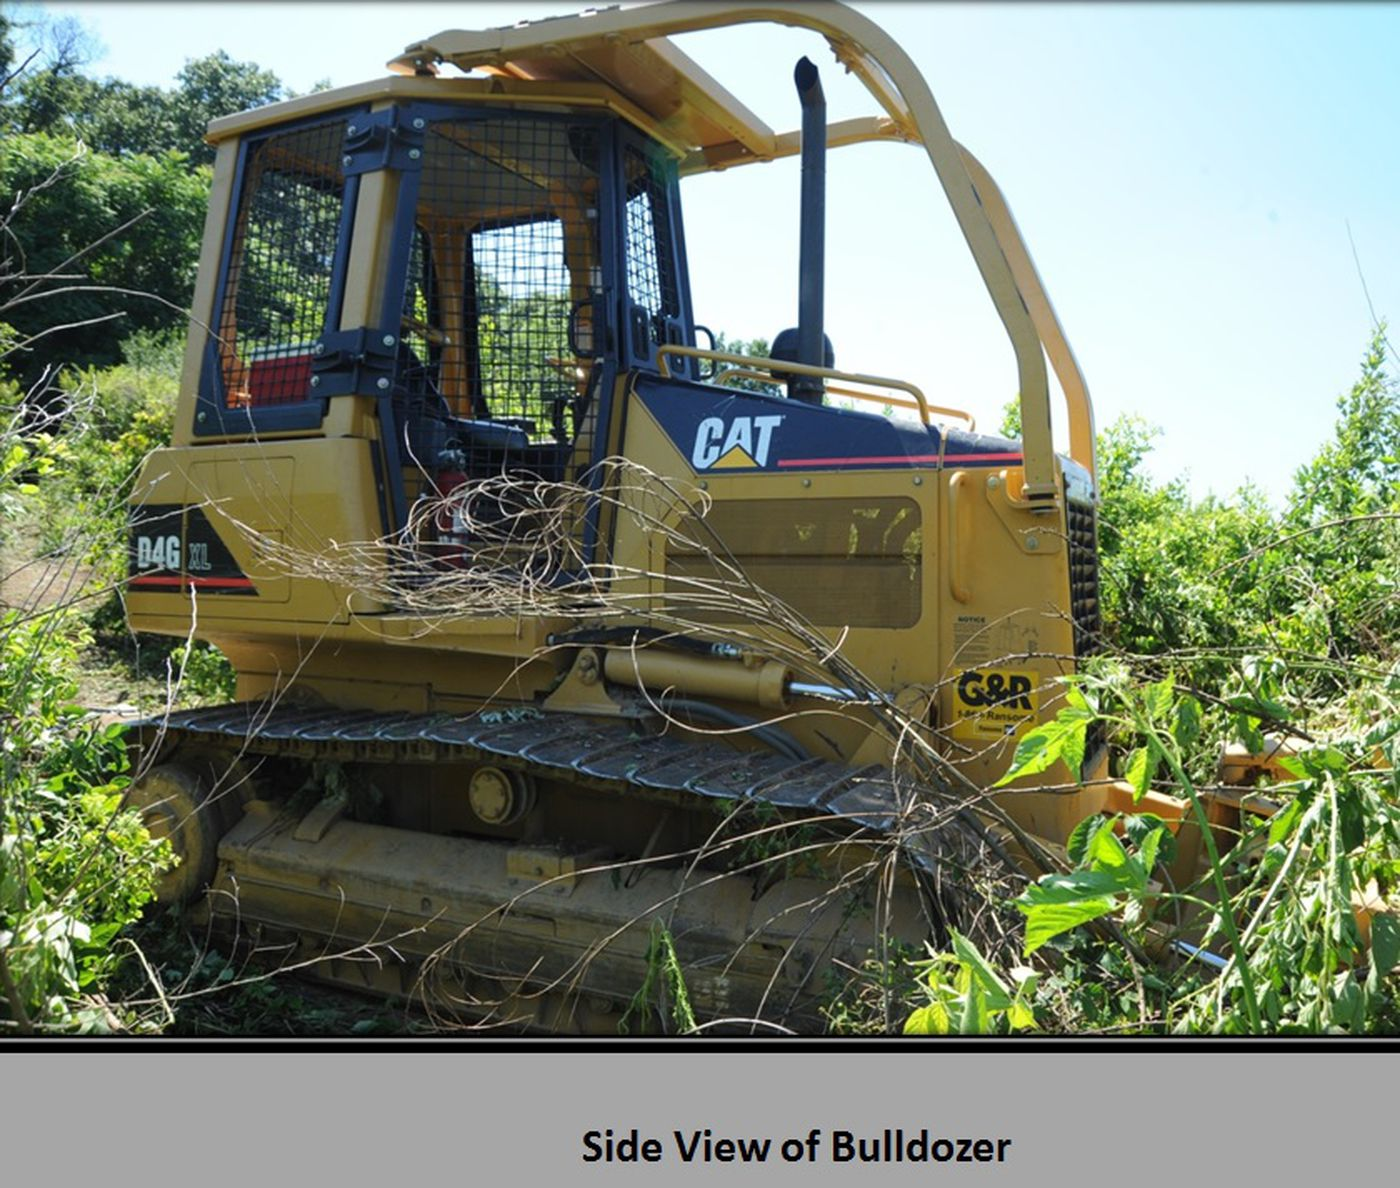 This CAT D4G XL bulldozer, owned by the Pennsylvania Game Commission, was commandeered by state police searching for Gregory Longenecker in July 2018.